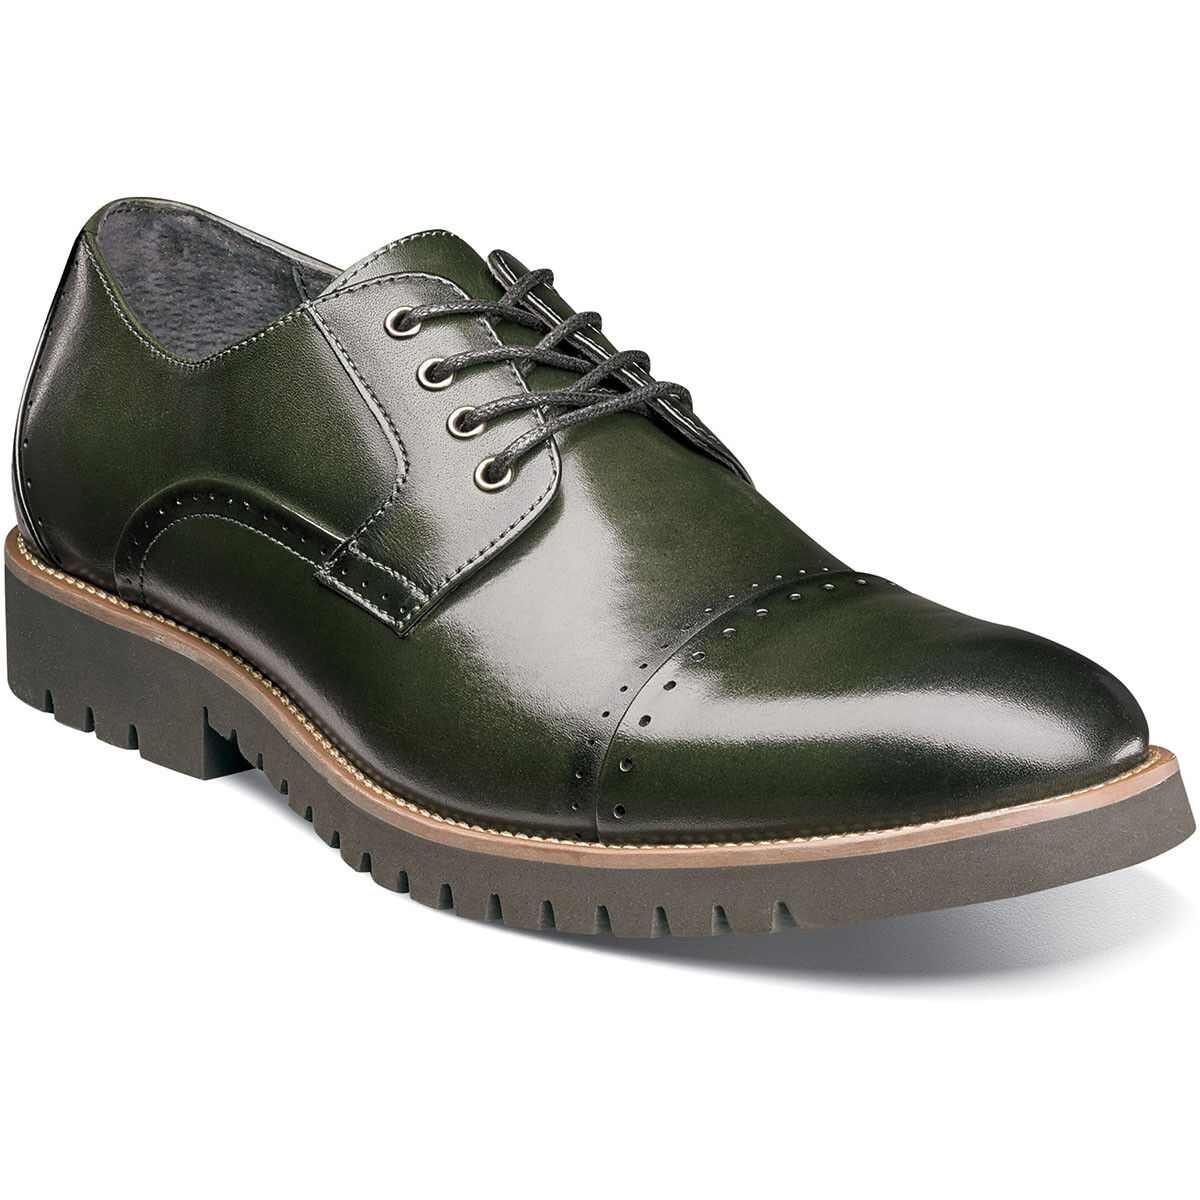 Stacy Adams Men's Shoes Barcliff Cargo Green Leather Cap Toe 25216-304